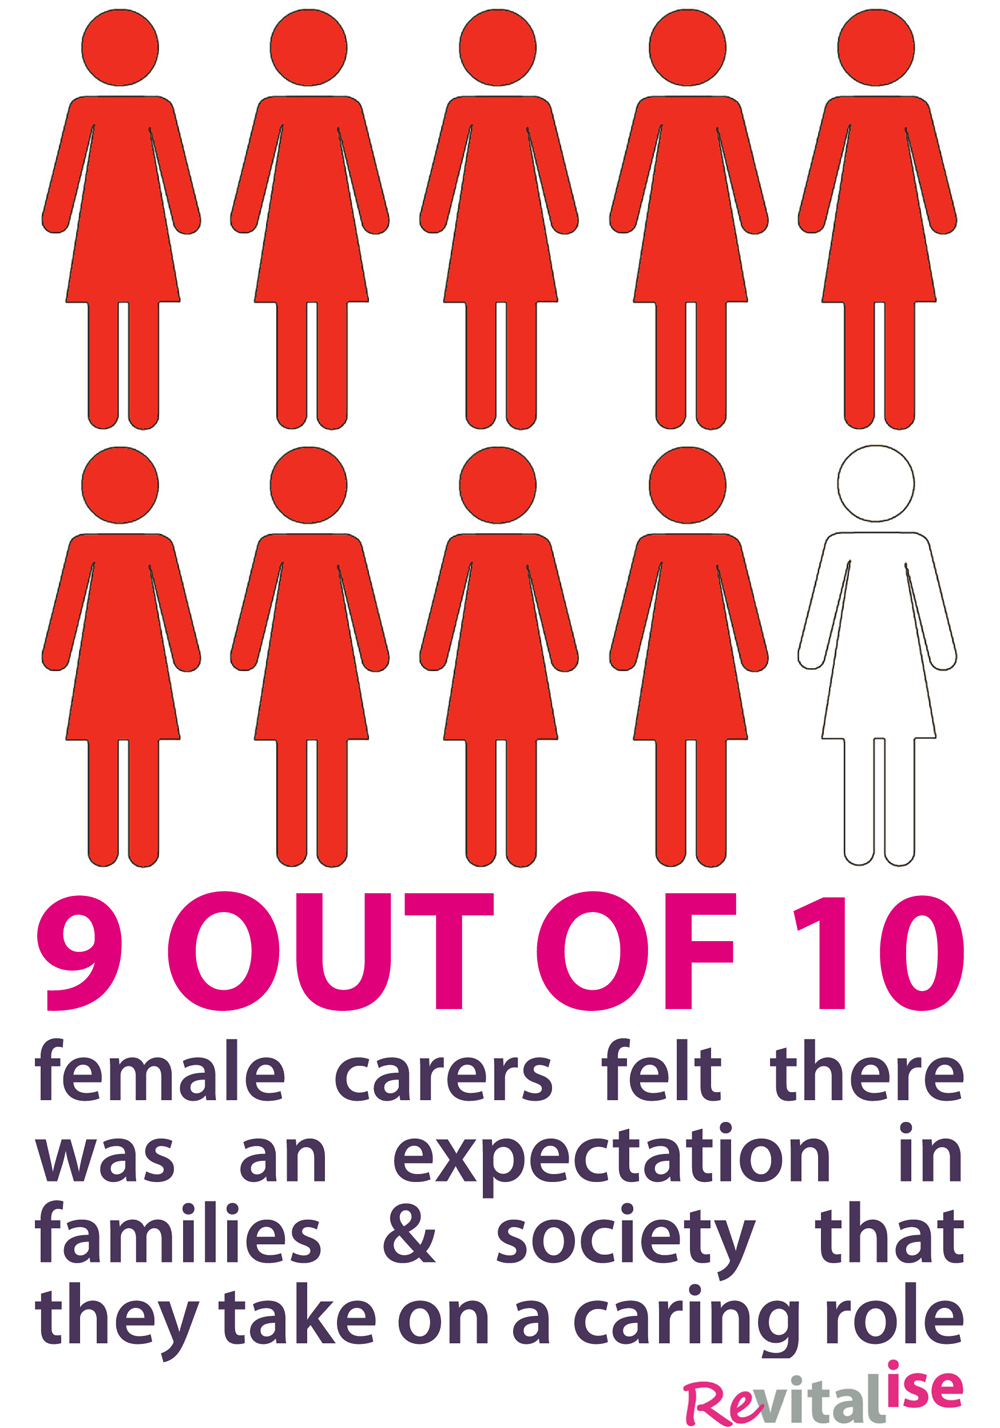 women as unpaid carers Women (carers uk, 2009) providing unpaid care can lead to the deteriorating health of the carer with poor health independently associated with unpaid care provision after controlling for socio-economic factors (maher and green 2002 young et al, 2005) only limited research has been conducted, which compares unpaid caring within and out-side the carers.